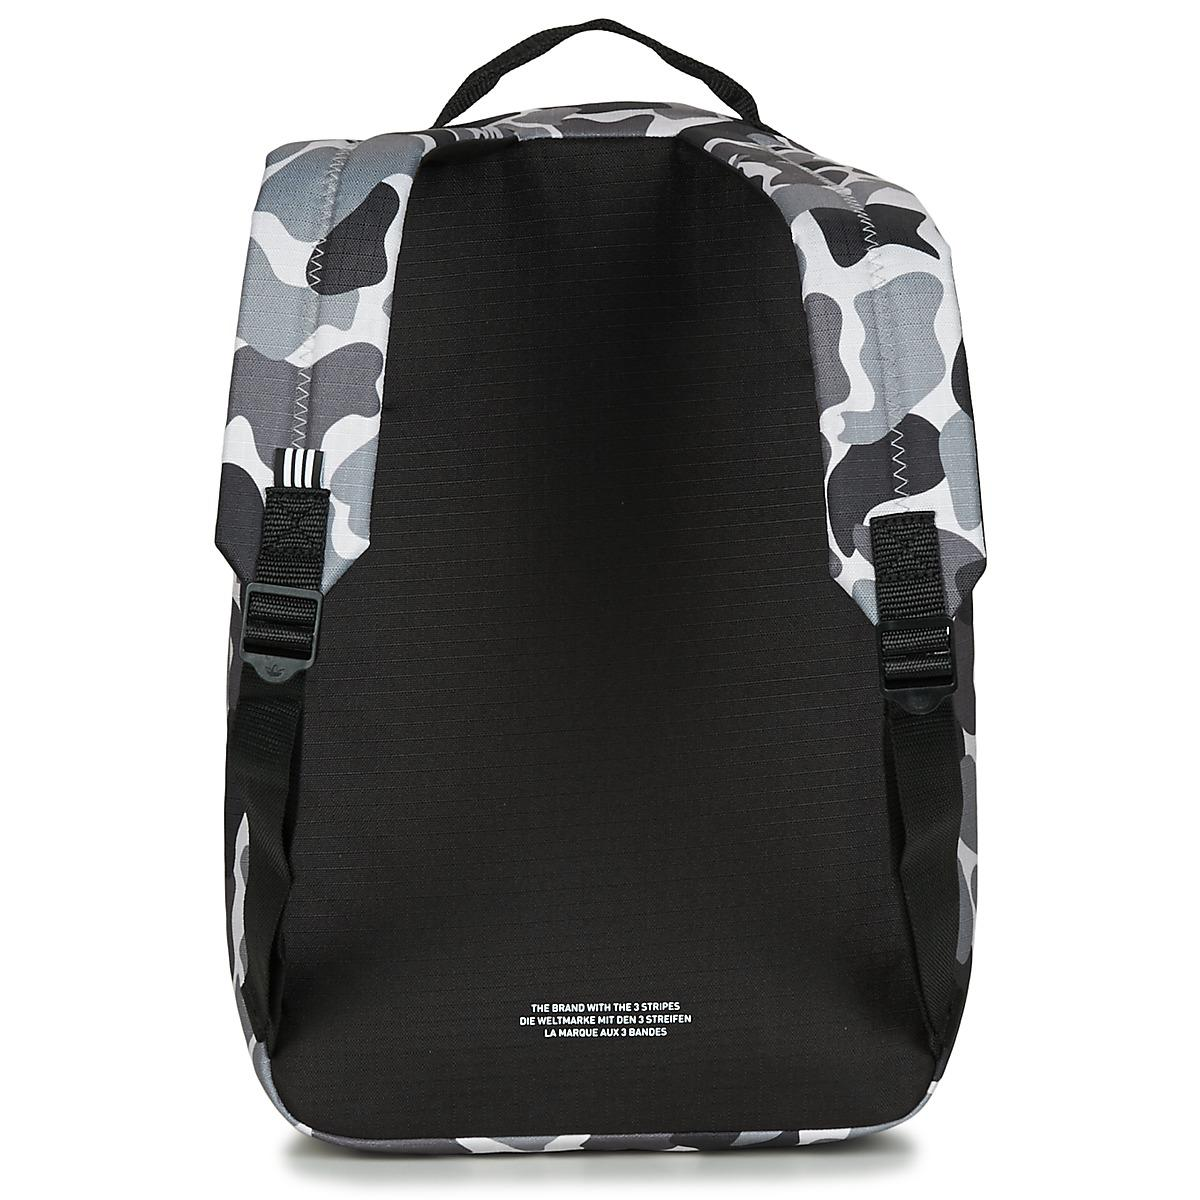 44032a9c23 adidas Bp Classic Camo Men s Backpack In Grey in Gray for Men - Save ...